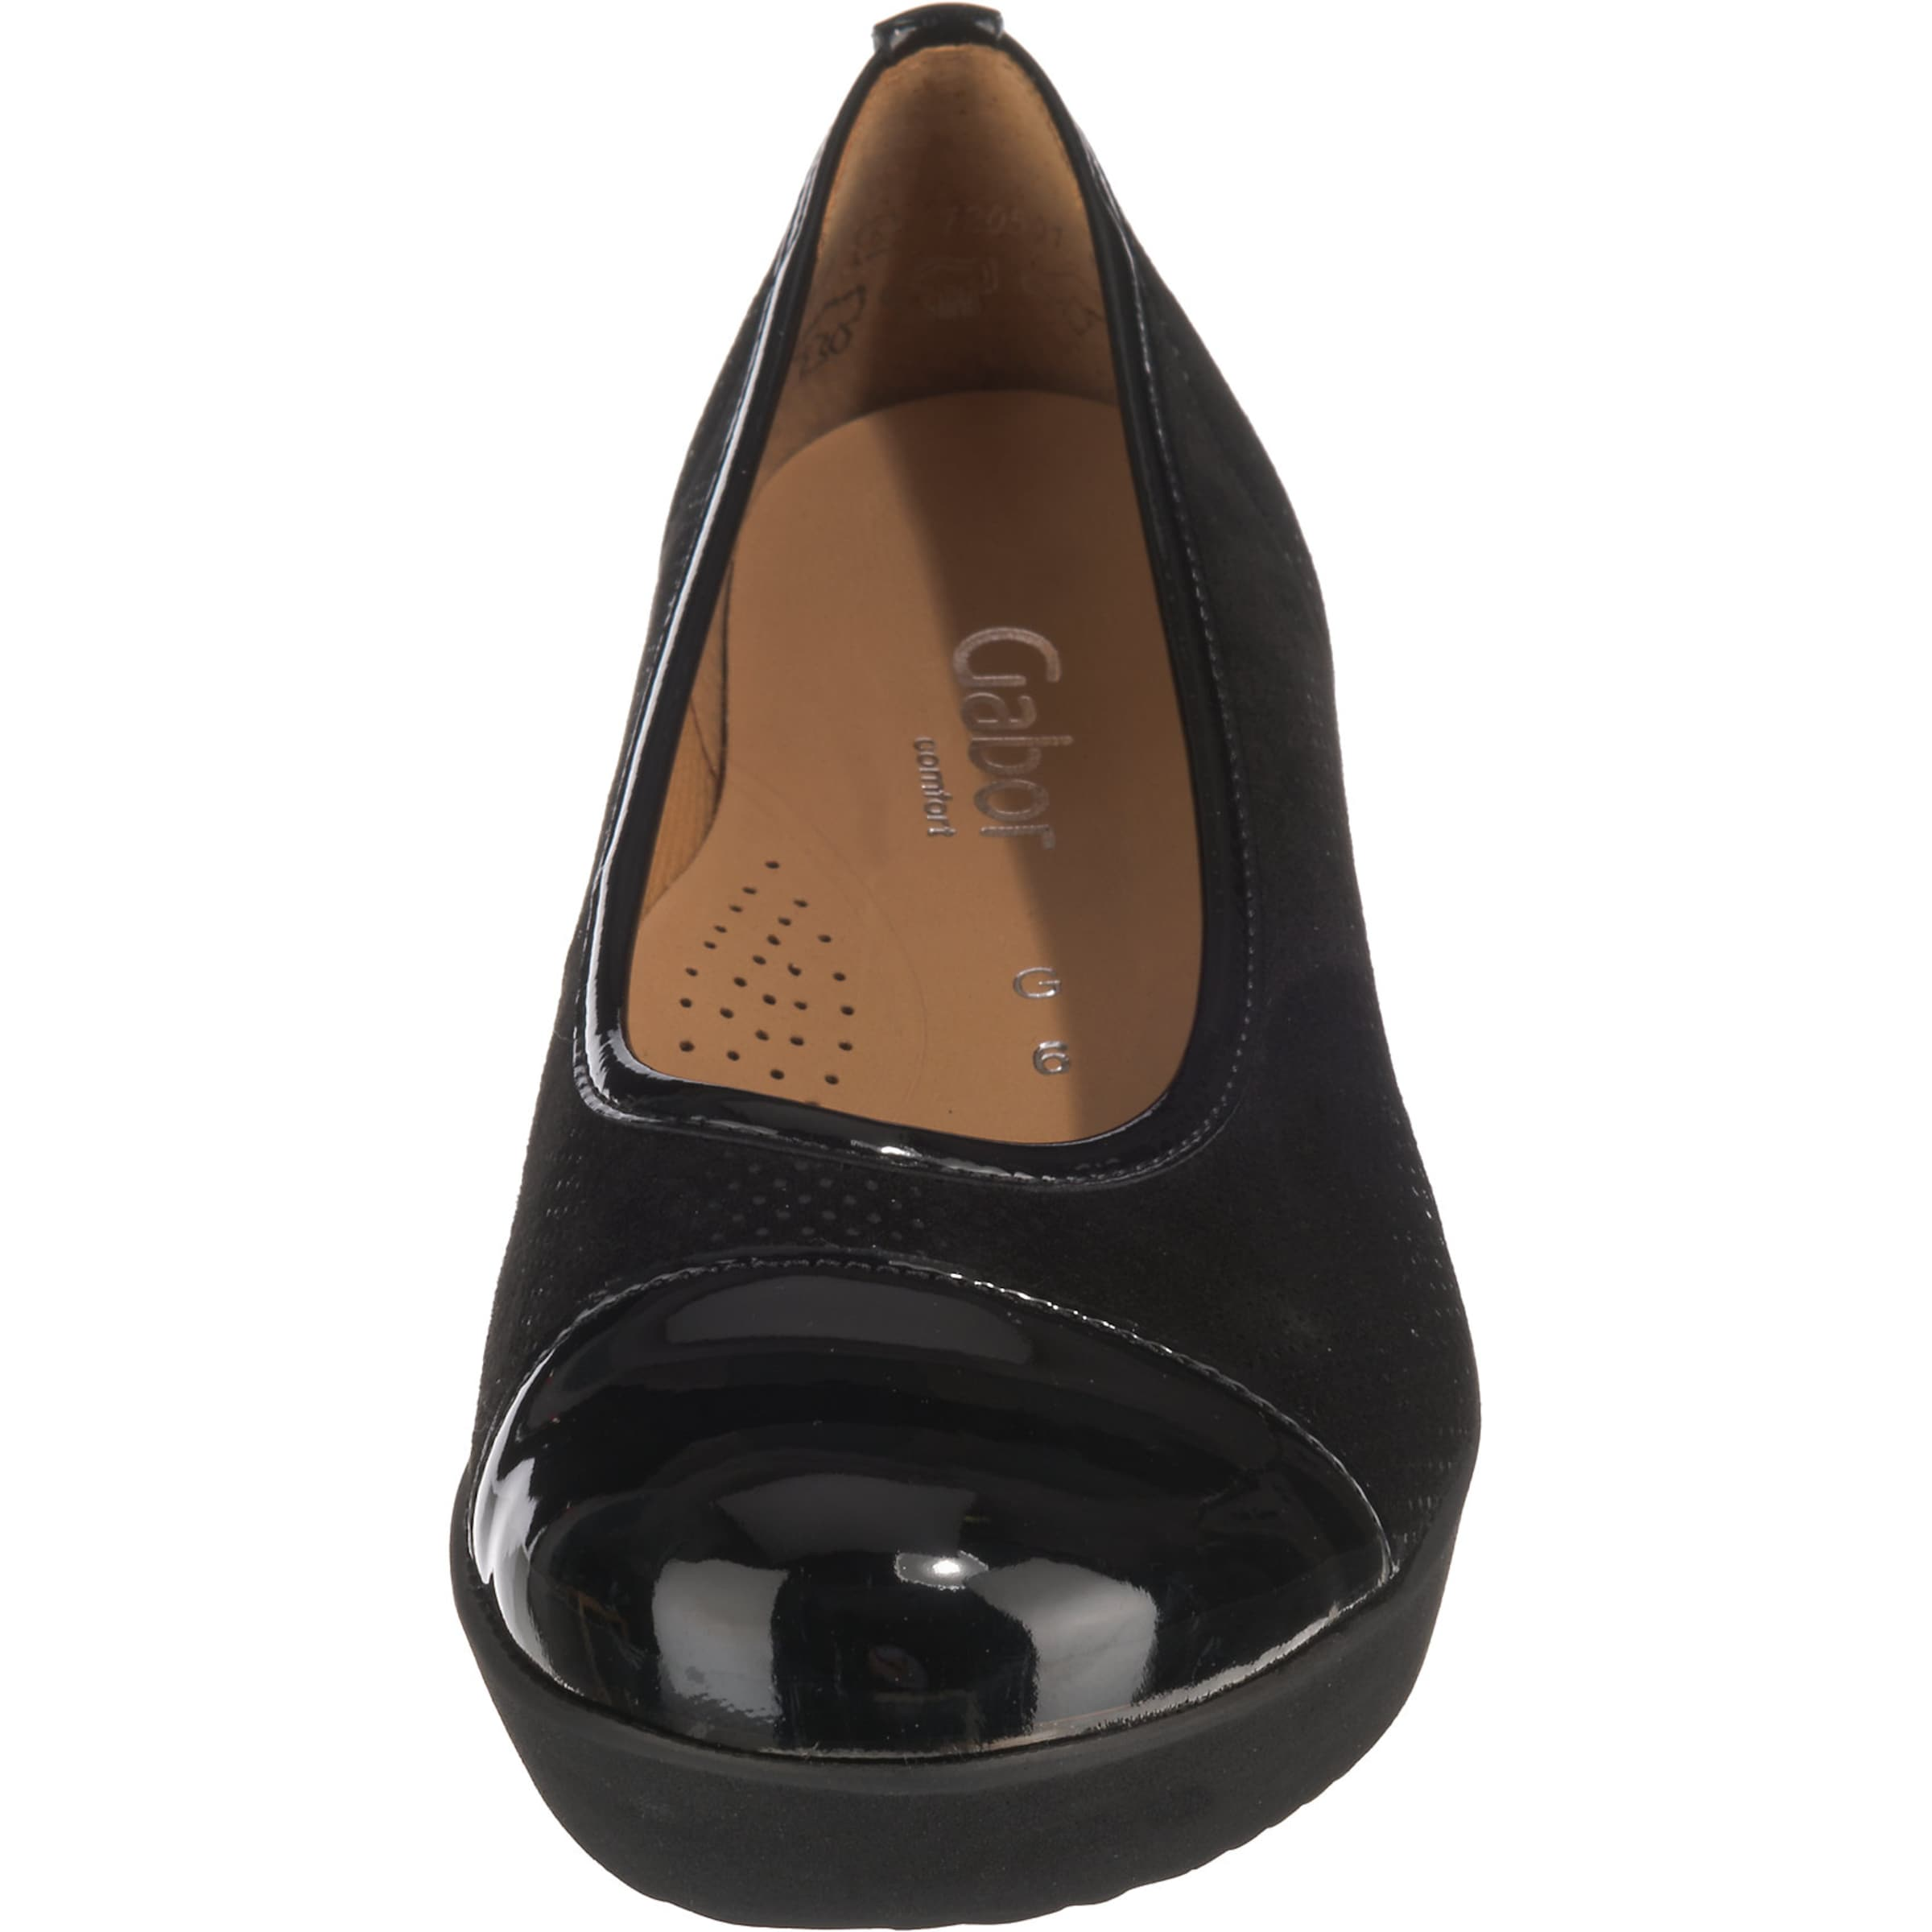 Pumps Gabor In Schwarz Pumps In Gabor Schwarz Pumps Gabor Pumps In Schwarz In Gabor 8ny0wvmNOP